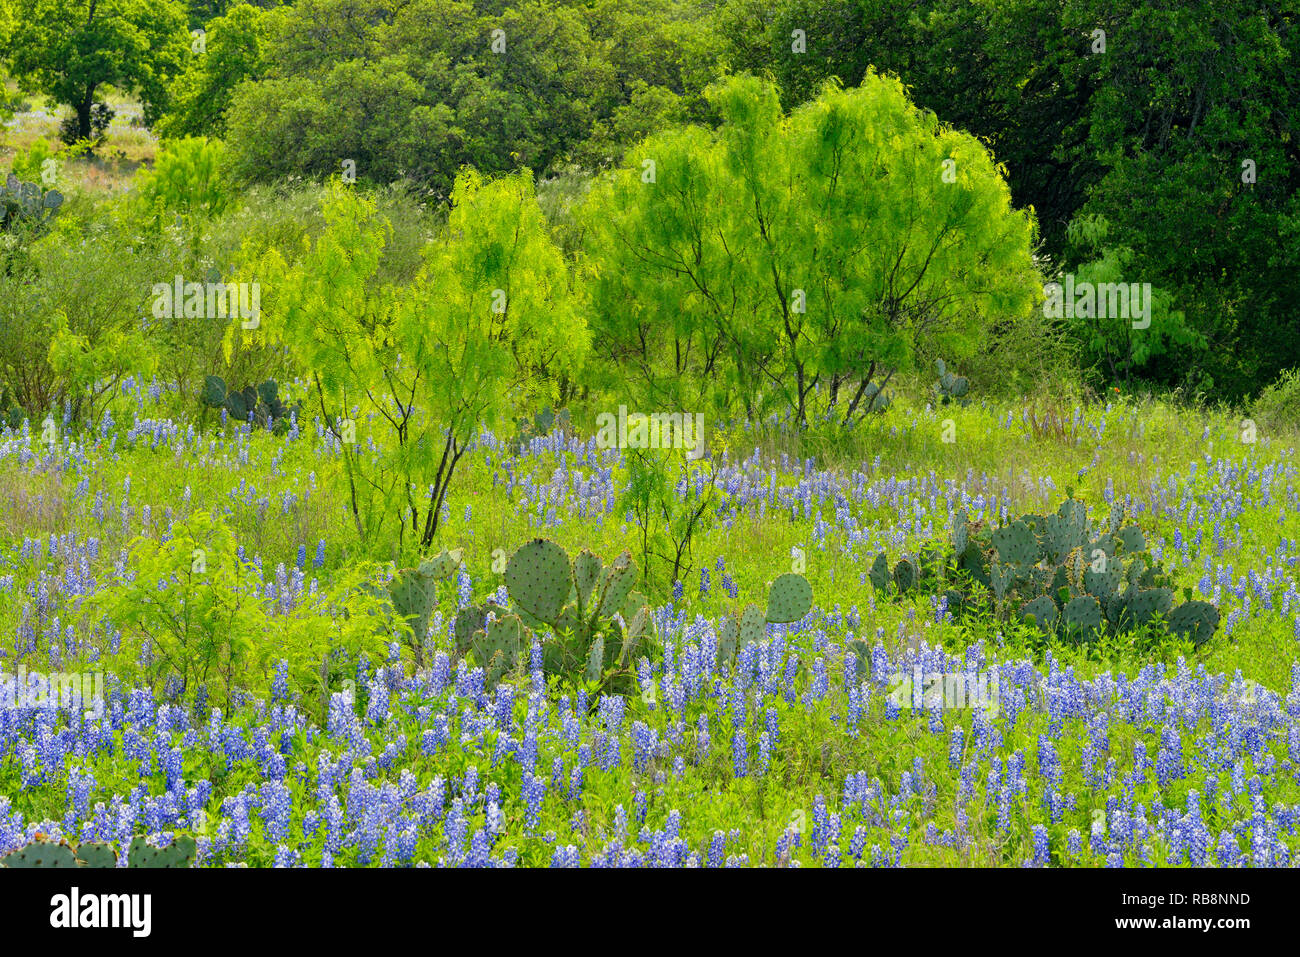 Texas bluebonnets, prickly pear cactus and mesquite along Hwy 71, Llano County, Texas, USA - Stock Image